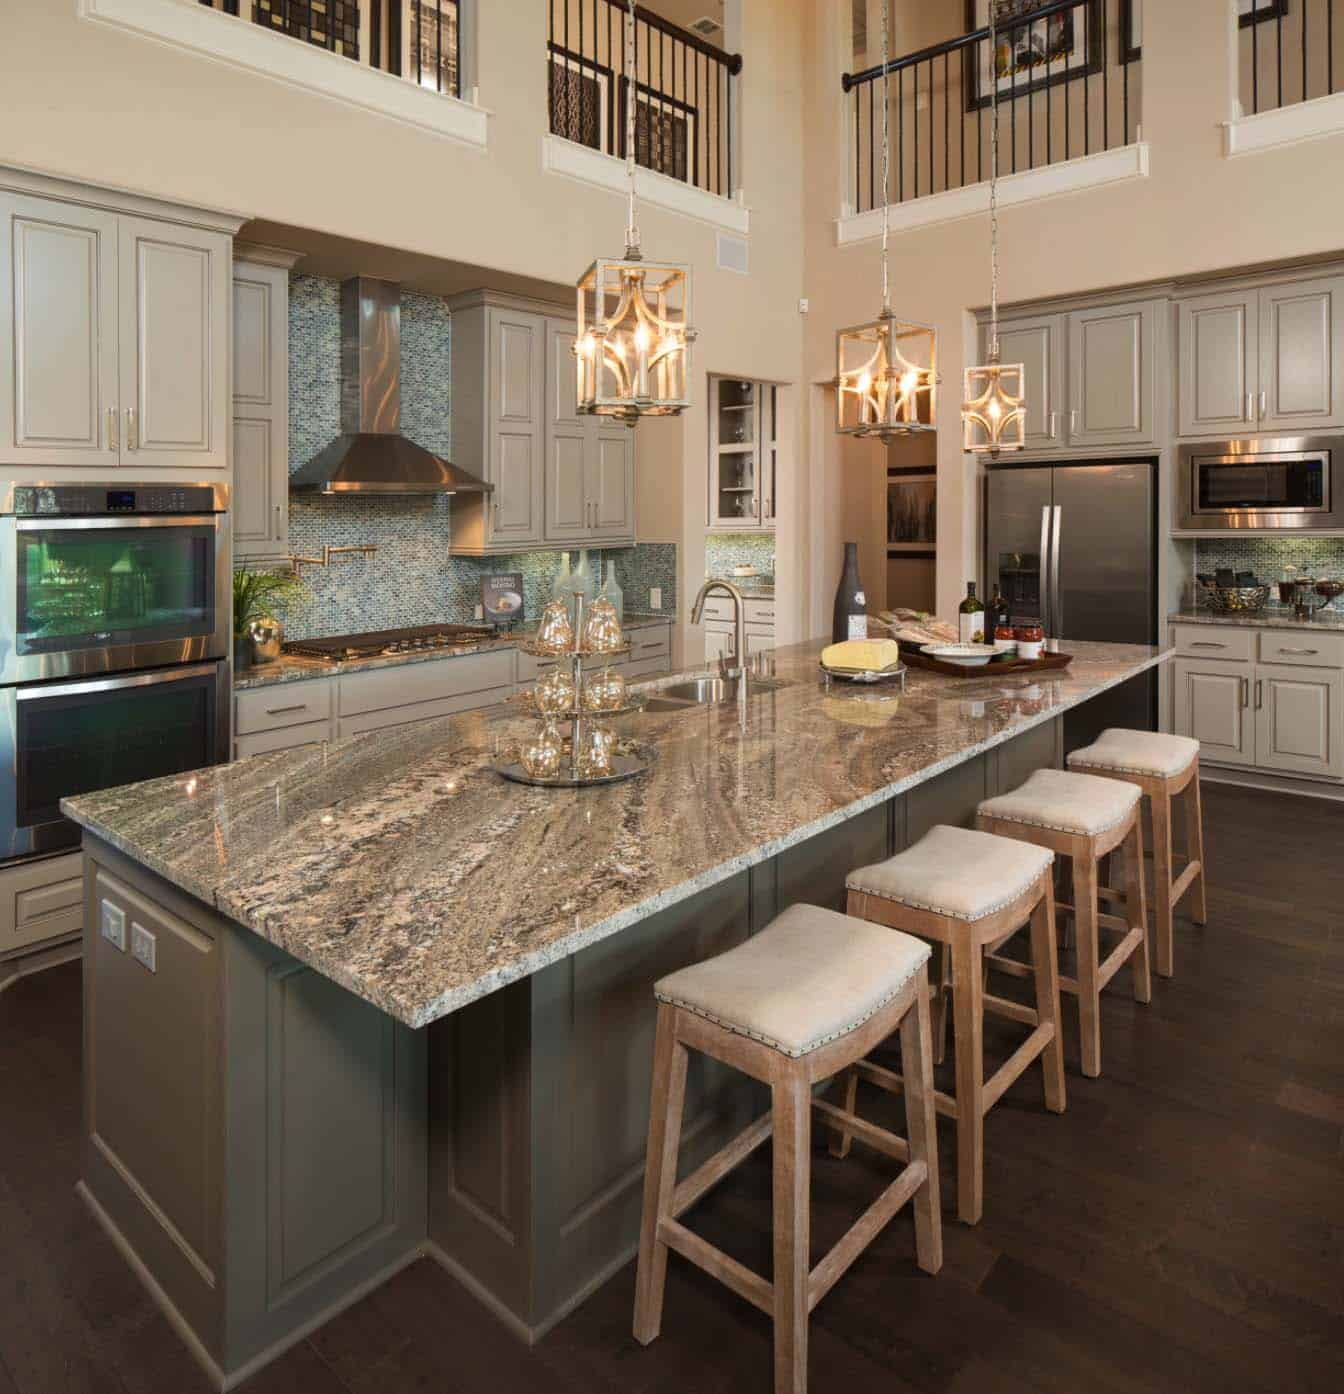 Small Kitchen Remodel Ideas For 2016: 30+ Brilliant Kitchen Island Ideas That Make A Statement